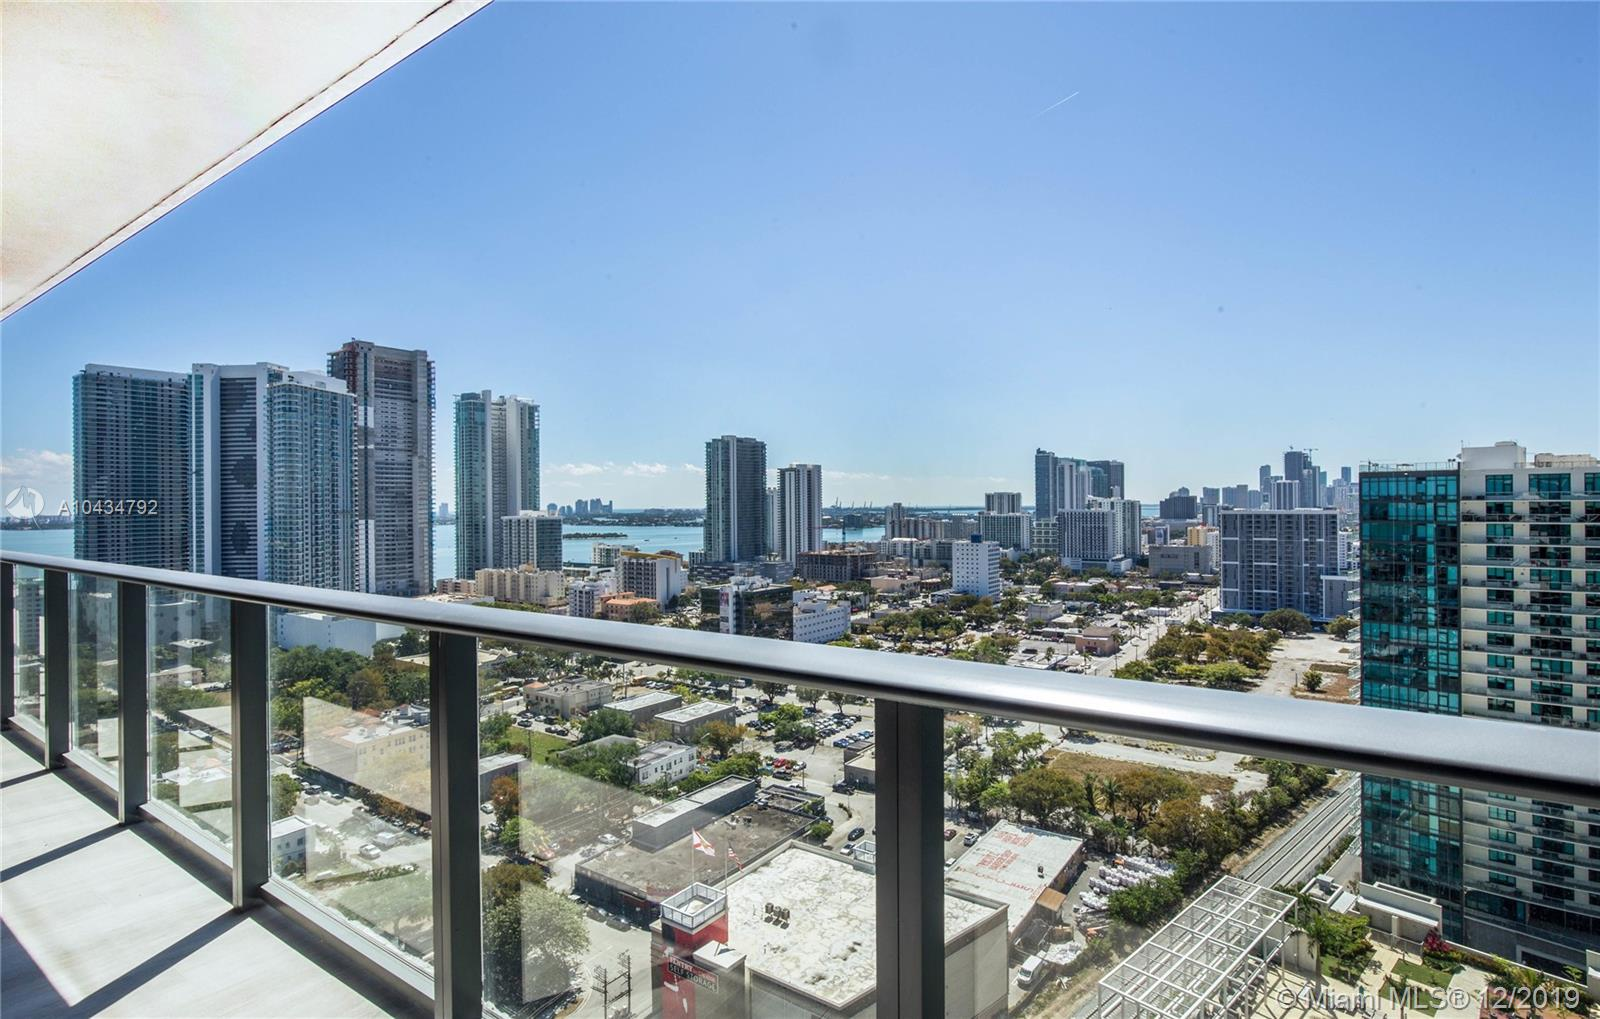 121 NE 34 street #2403 For Sale A10434792, FL